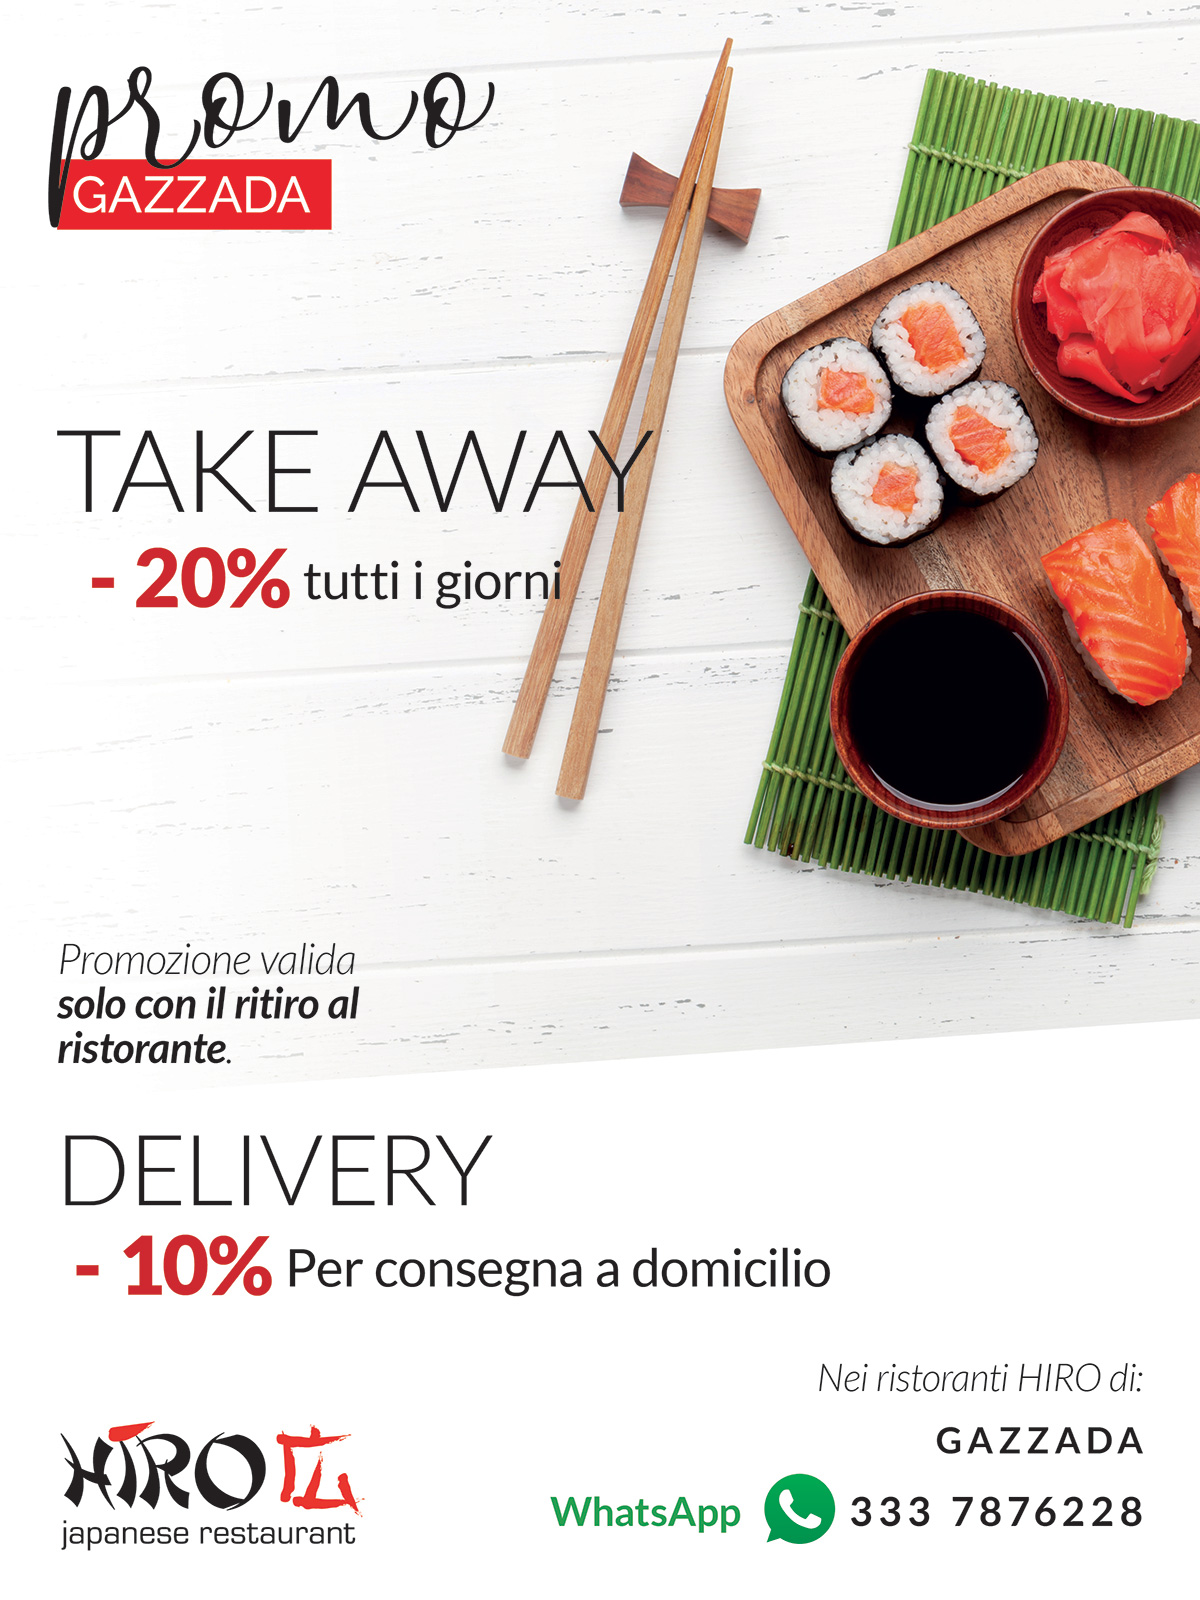 Post_Promo_Take_Away_HIRO_GENNAIO_Gazzada